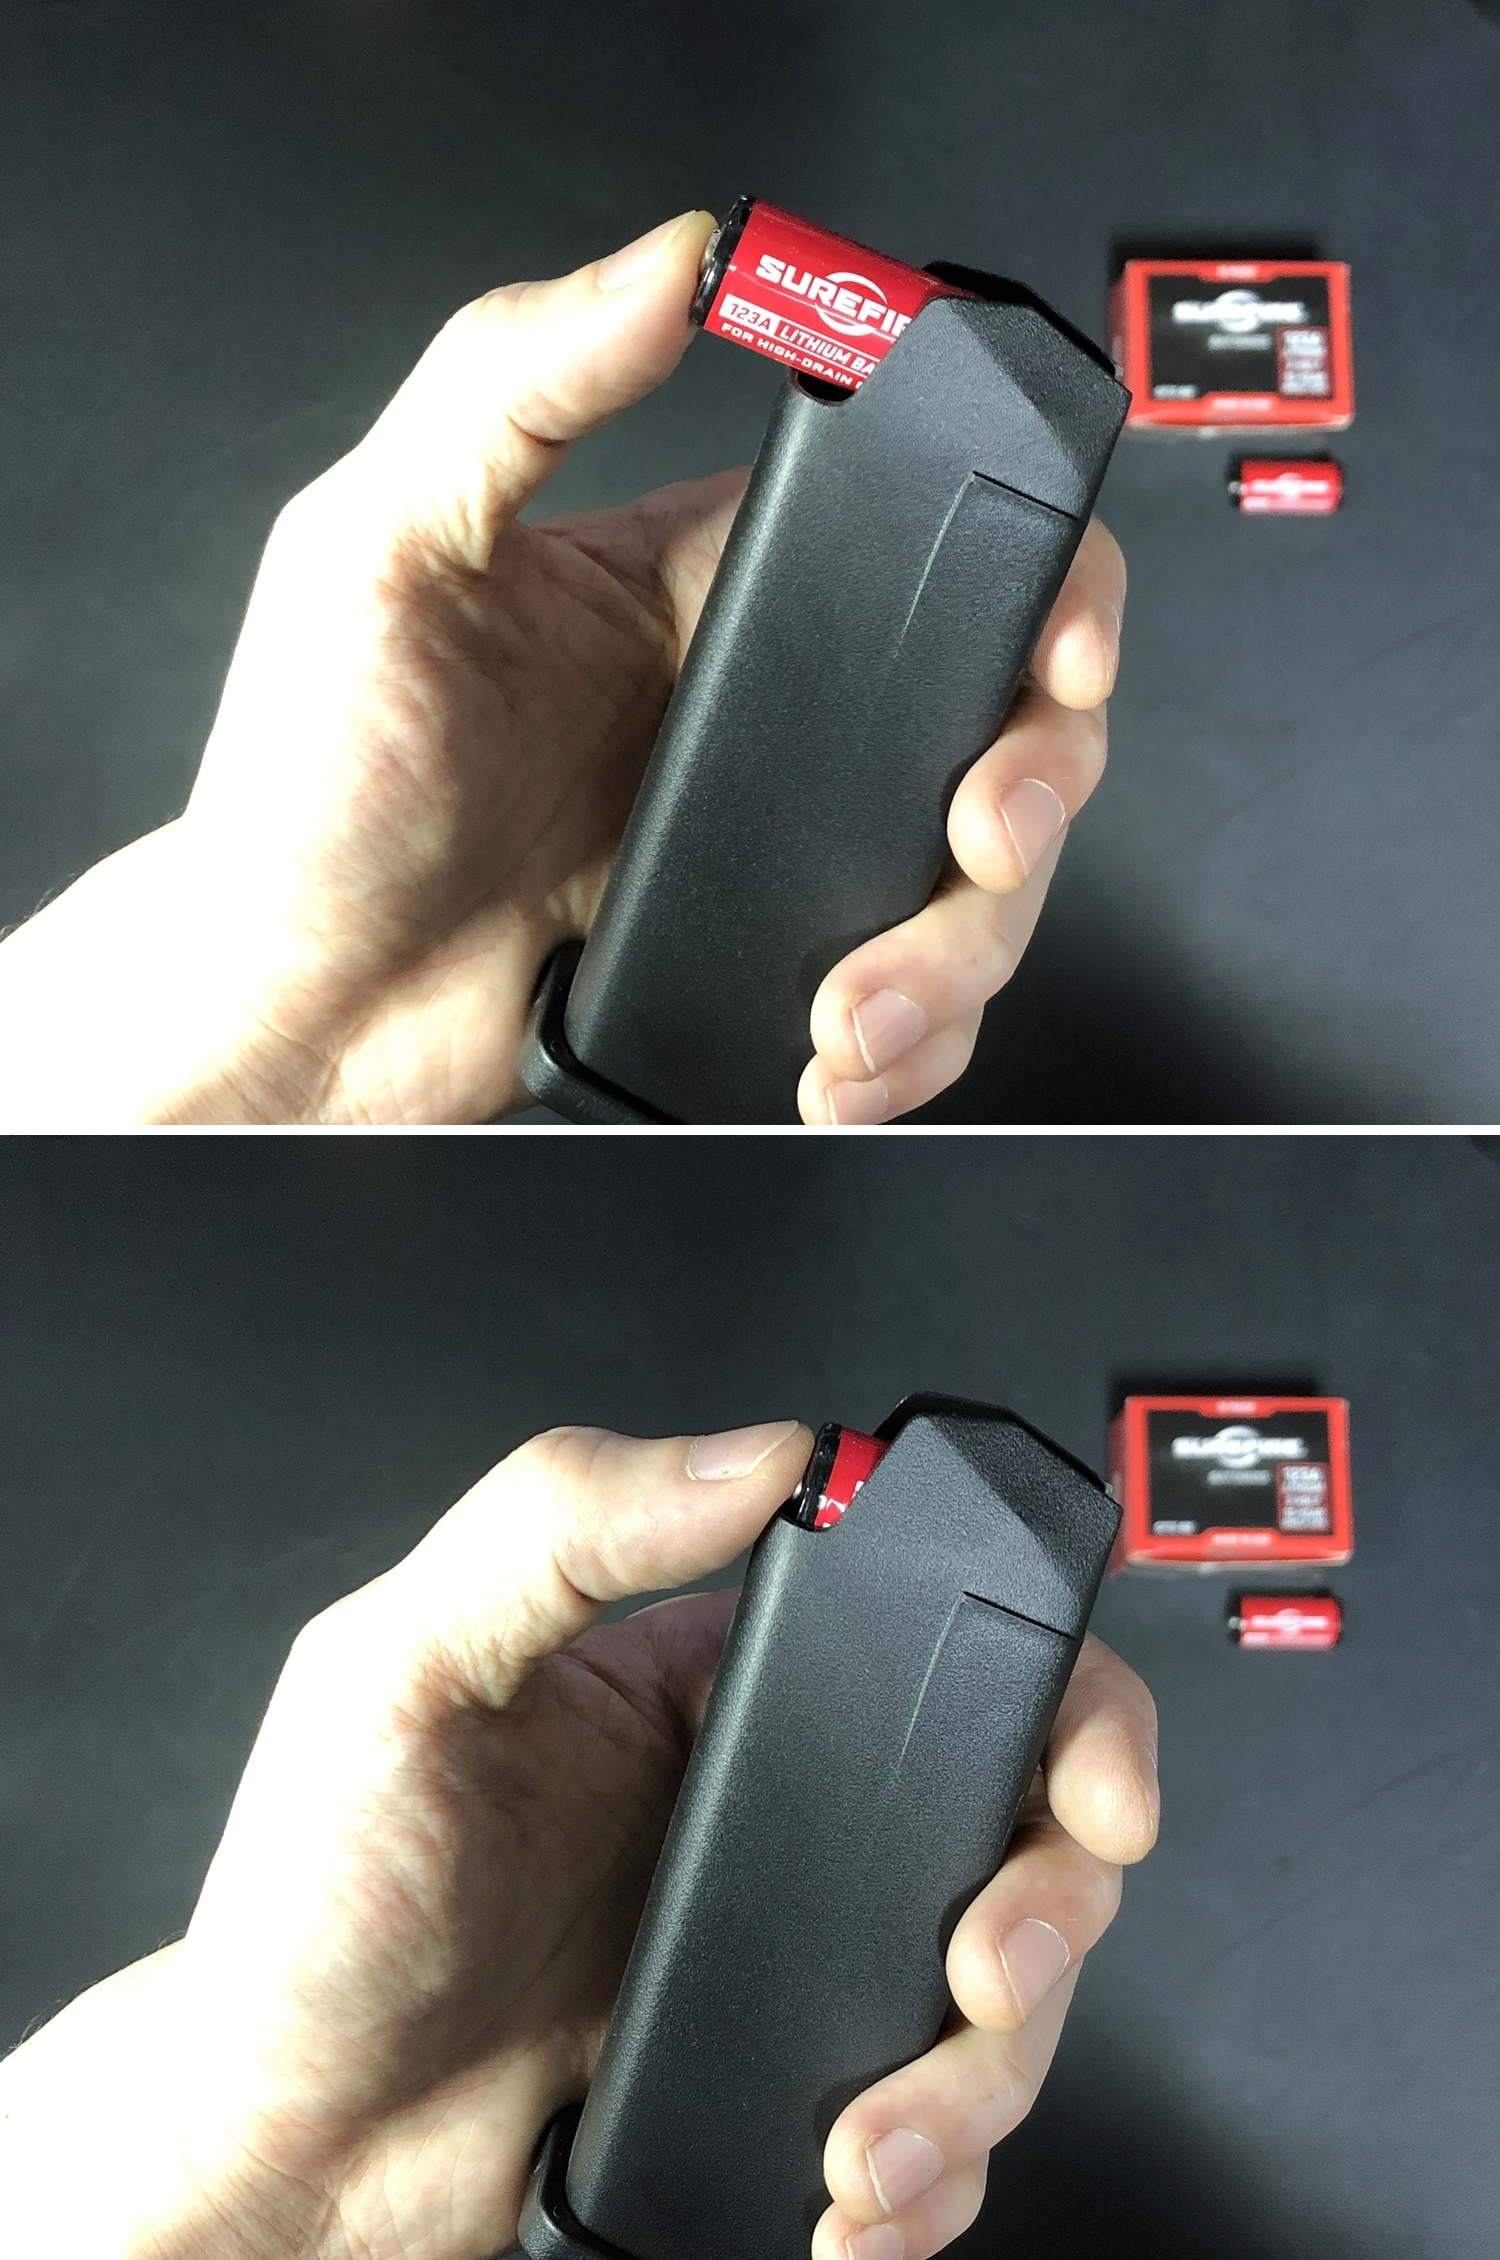 9 TMC GLOCK MAGAZINE STYLE CR123A BATTERY CASE グロック マガジン スタイル 電池ケース SUREFIRE SF123A 純正電池!! 購入 開封 取付 レビュー!!